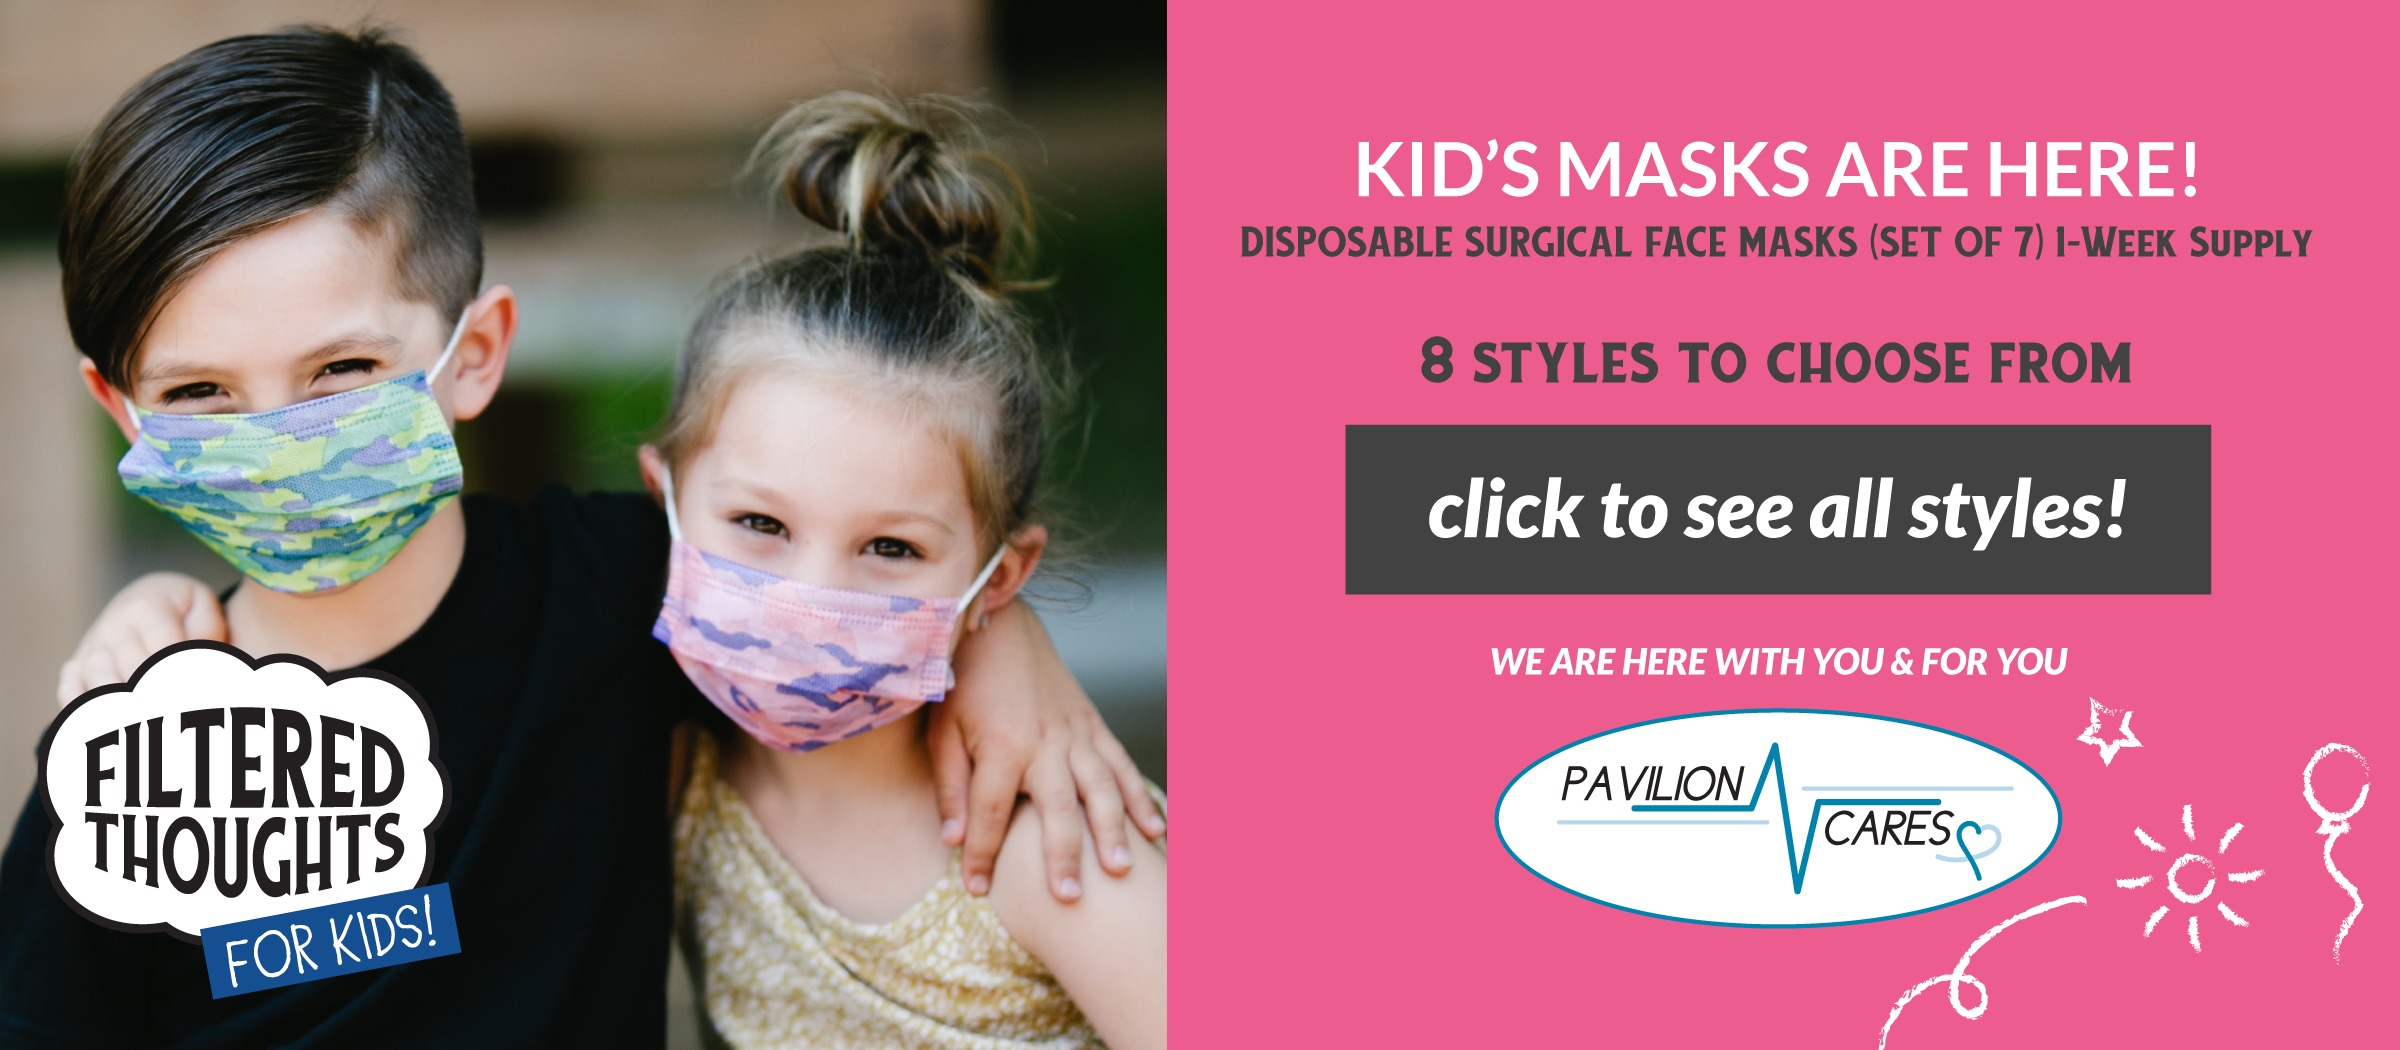 Kid's Face Masks - Coming Soon